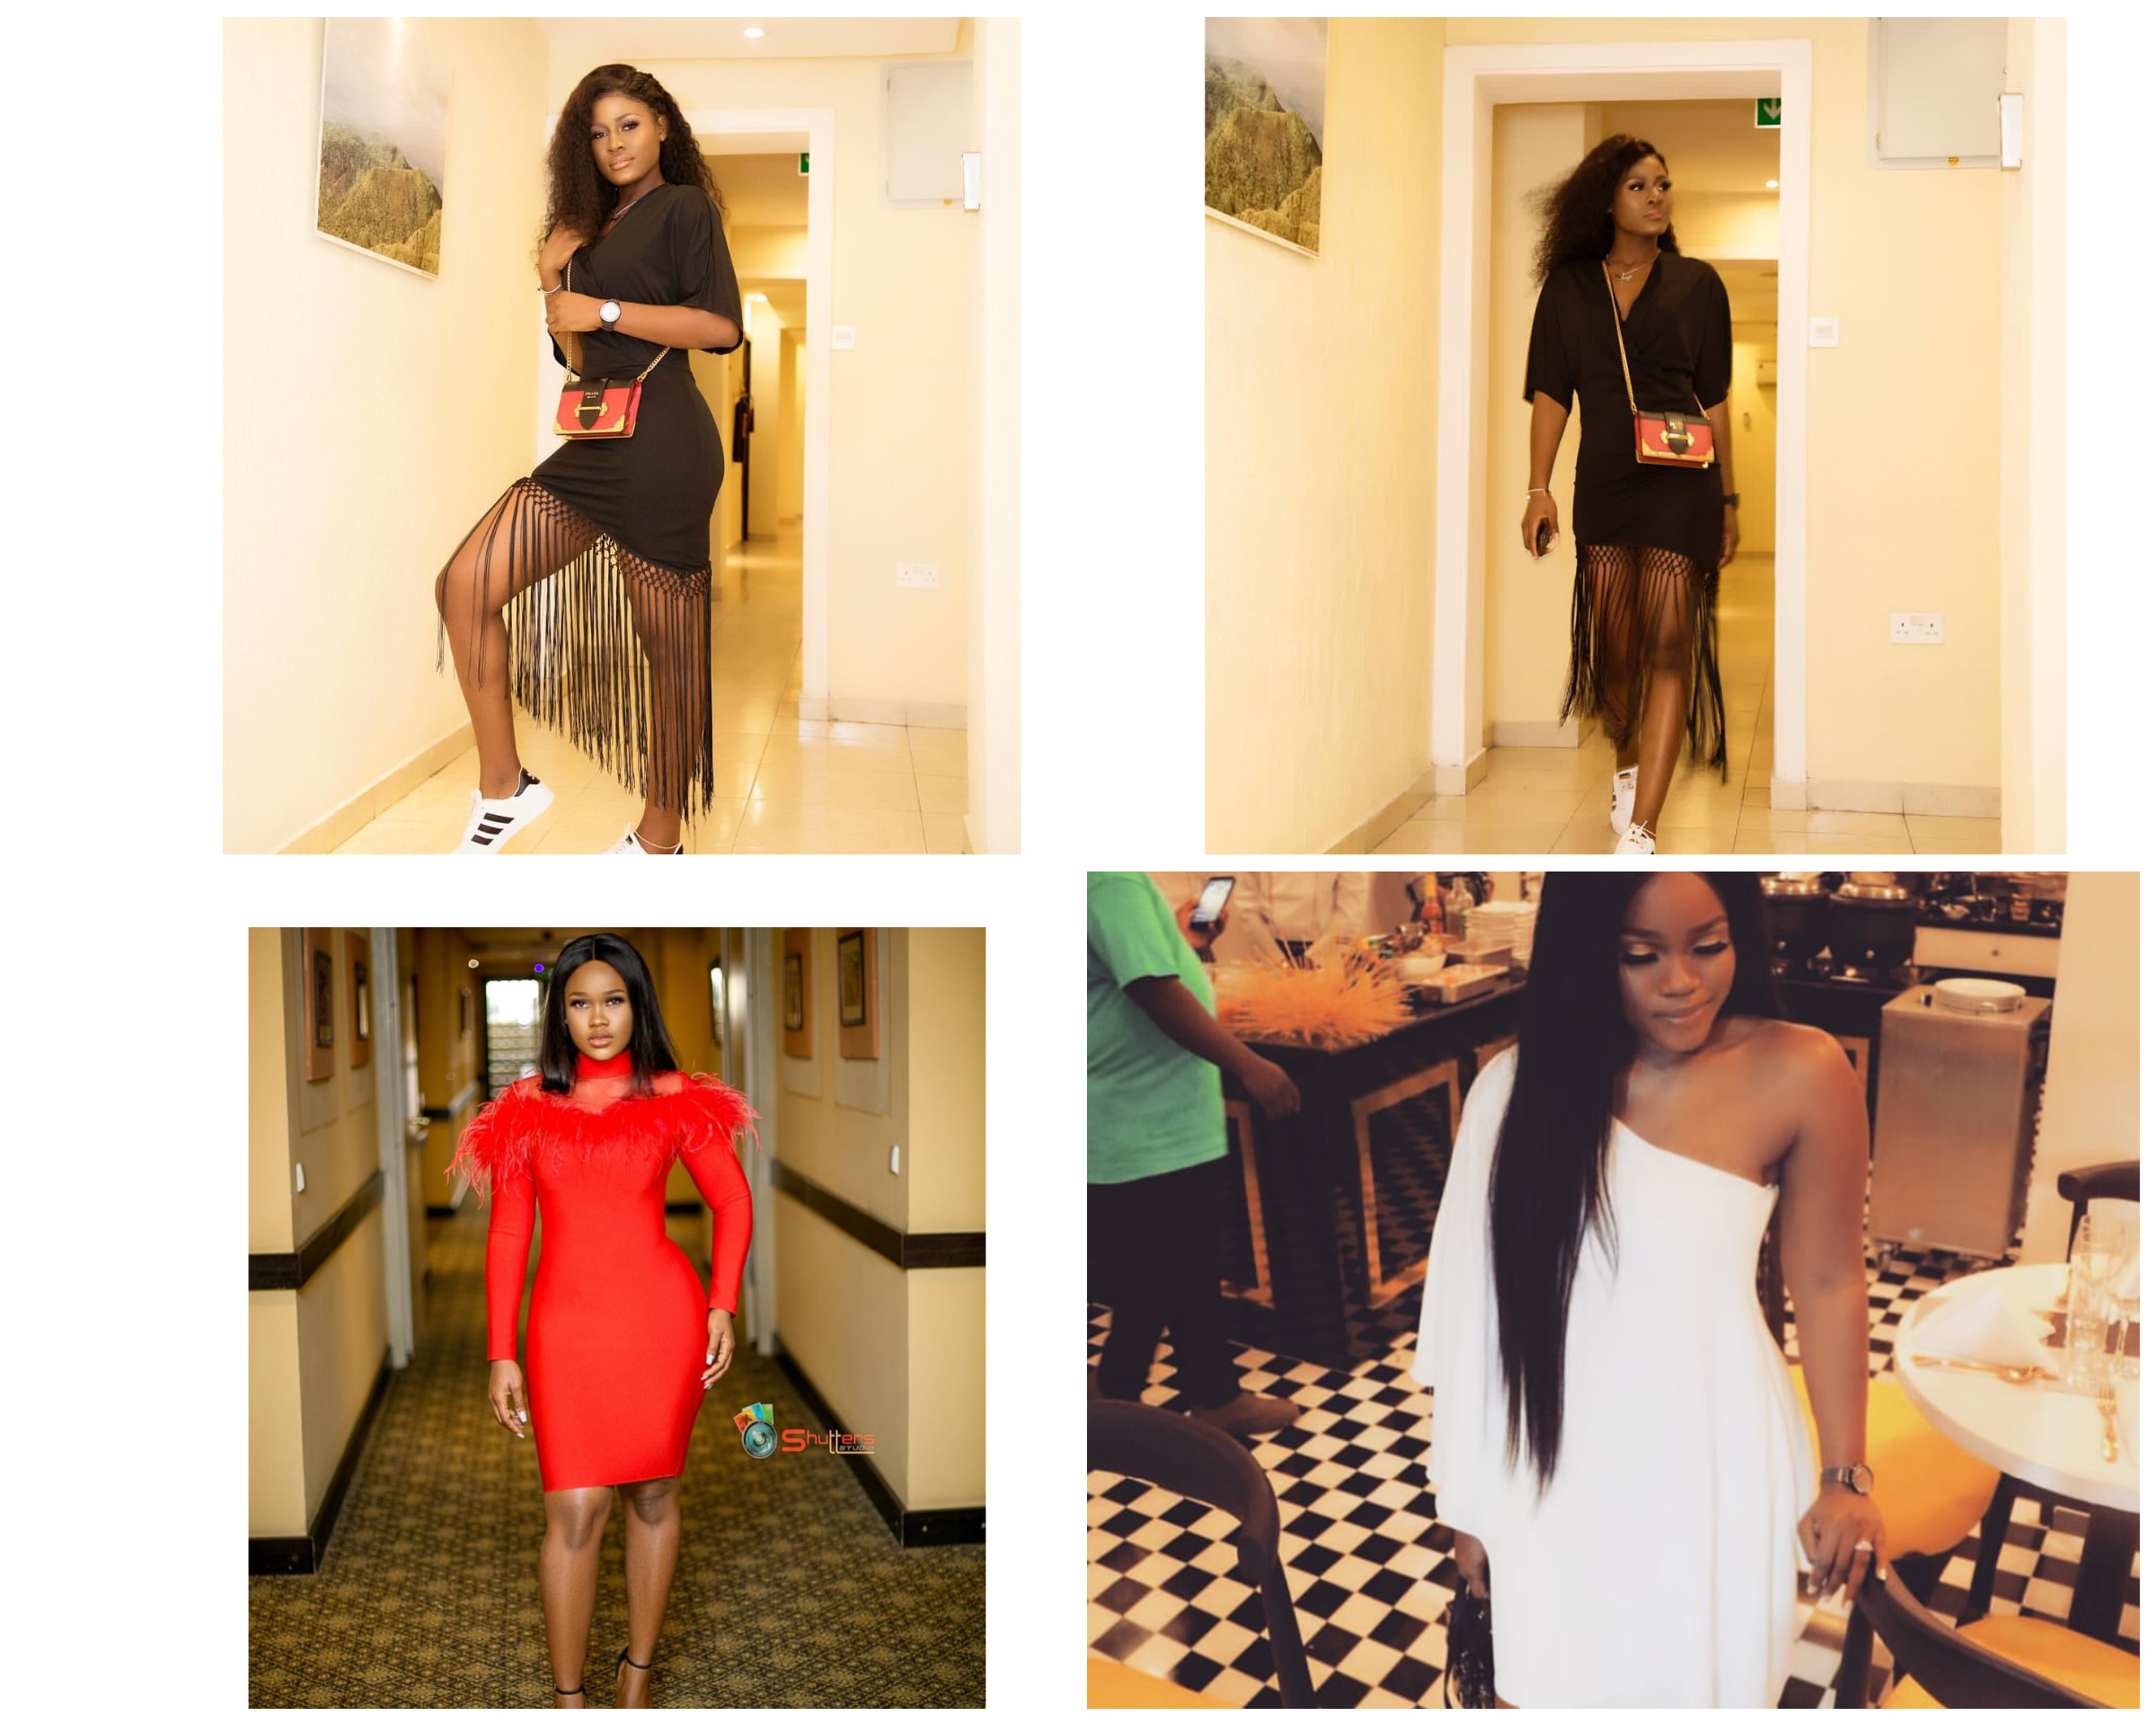 Alex Unusual and Cee-c, Between Alex Unusual and Cee-c who got the hot legs?, Latest Nigeria News, Daily Devotionals & Celebrity Gossips - Chidispalace